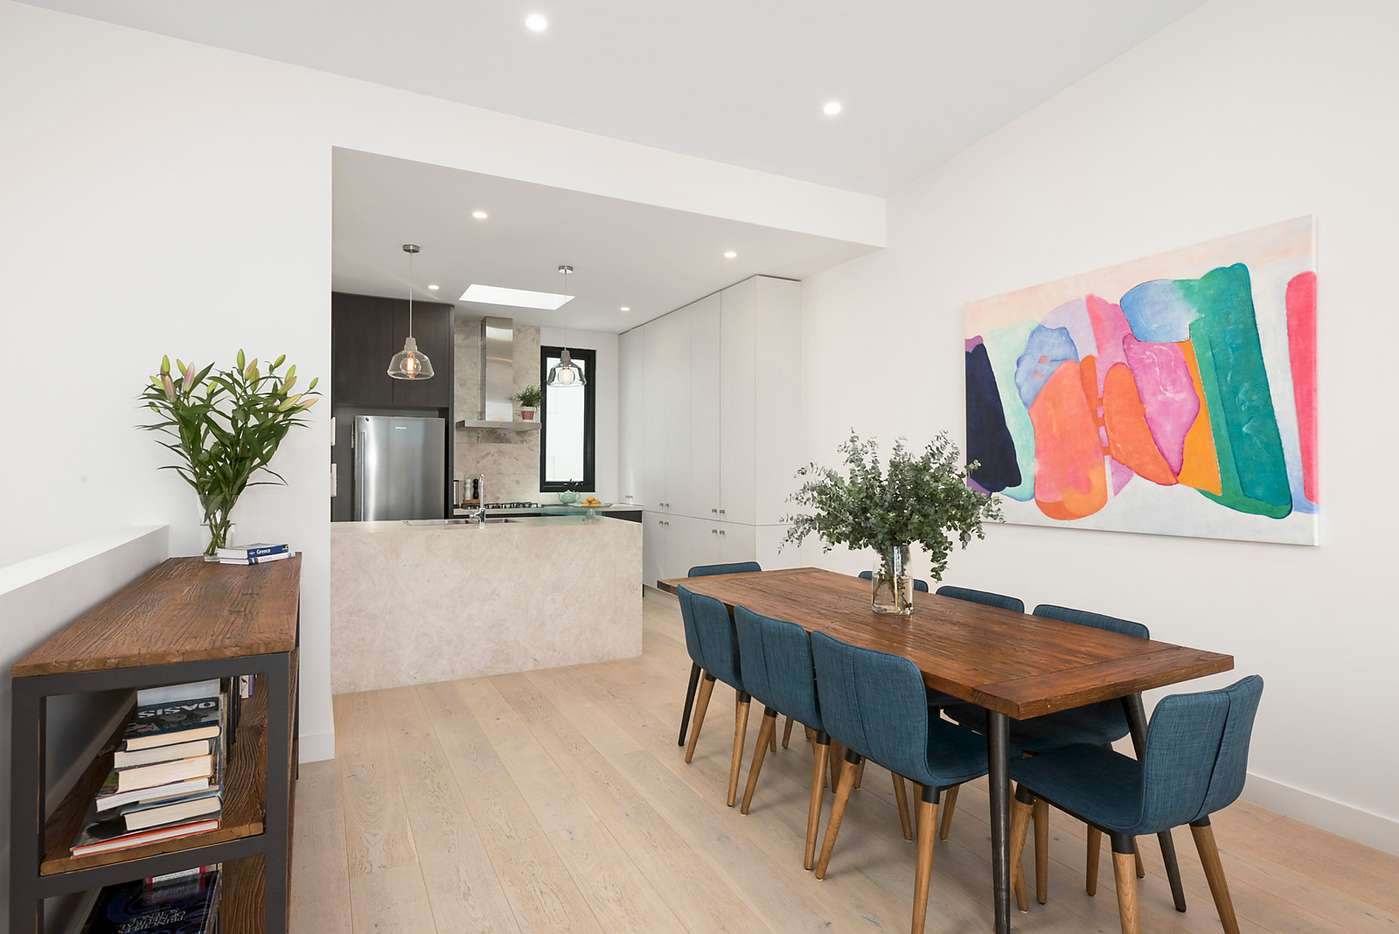 Main view of Homely house listing, 4/582 Nicholson Street, Fitzroy North, VIC 3068